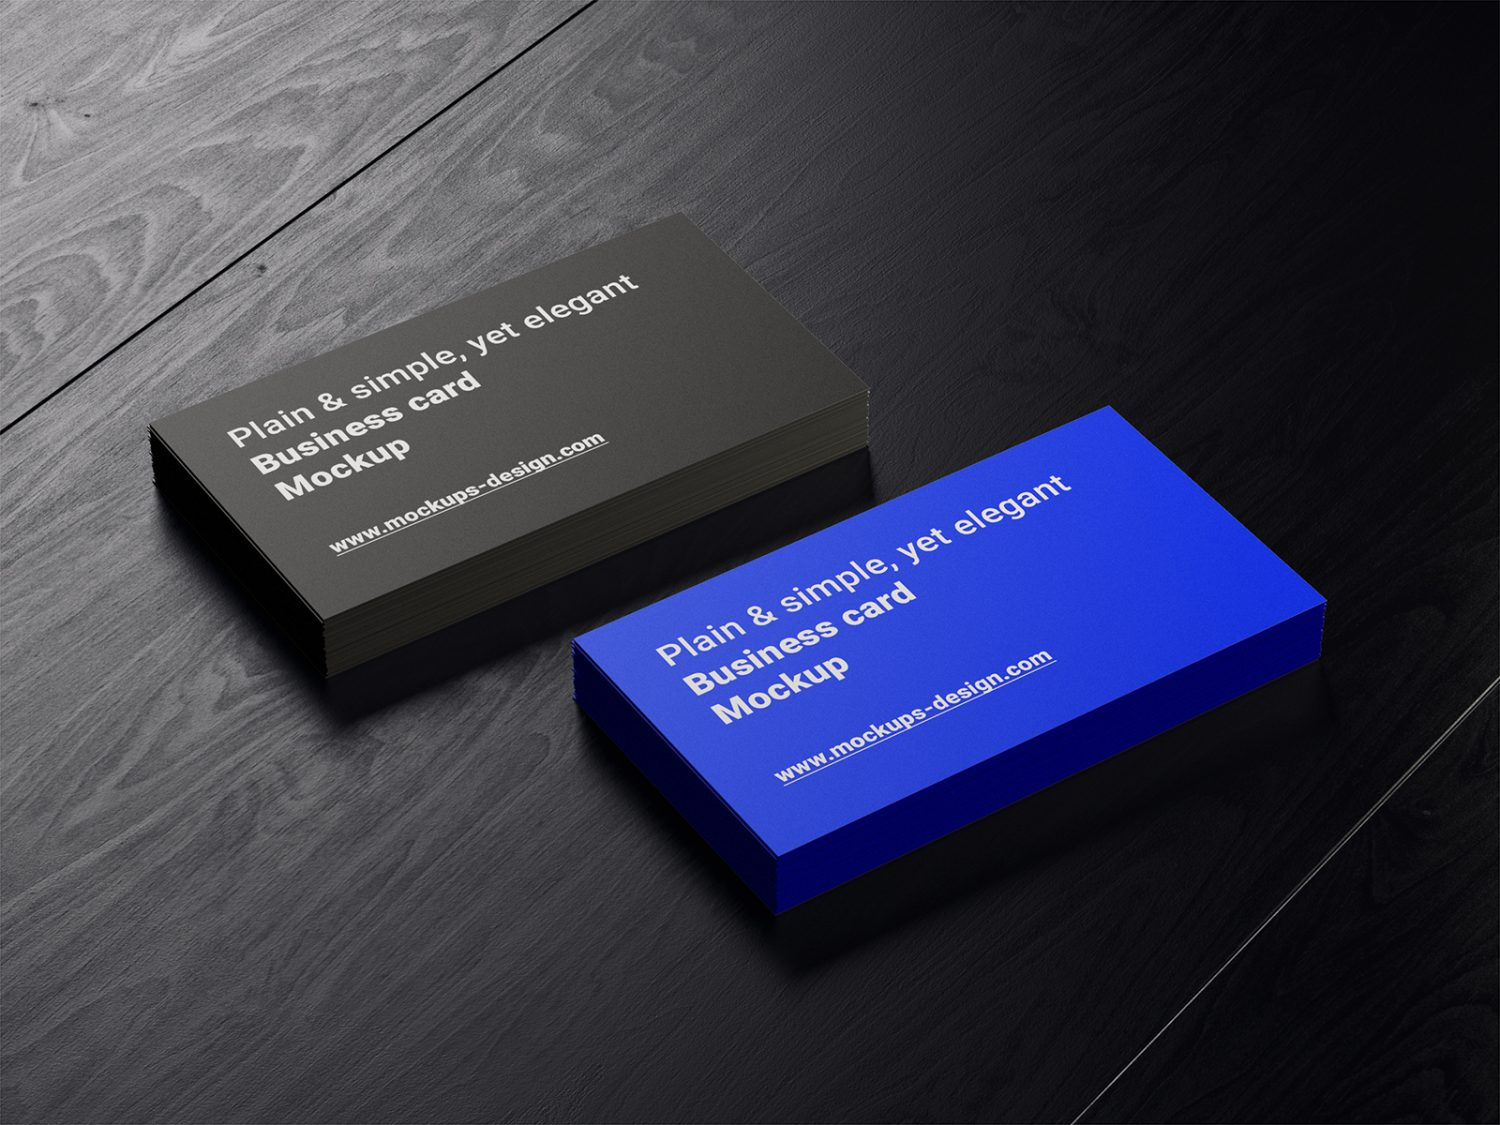 Business Cards Mockup on a Dark Wood